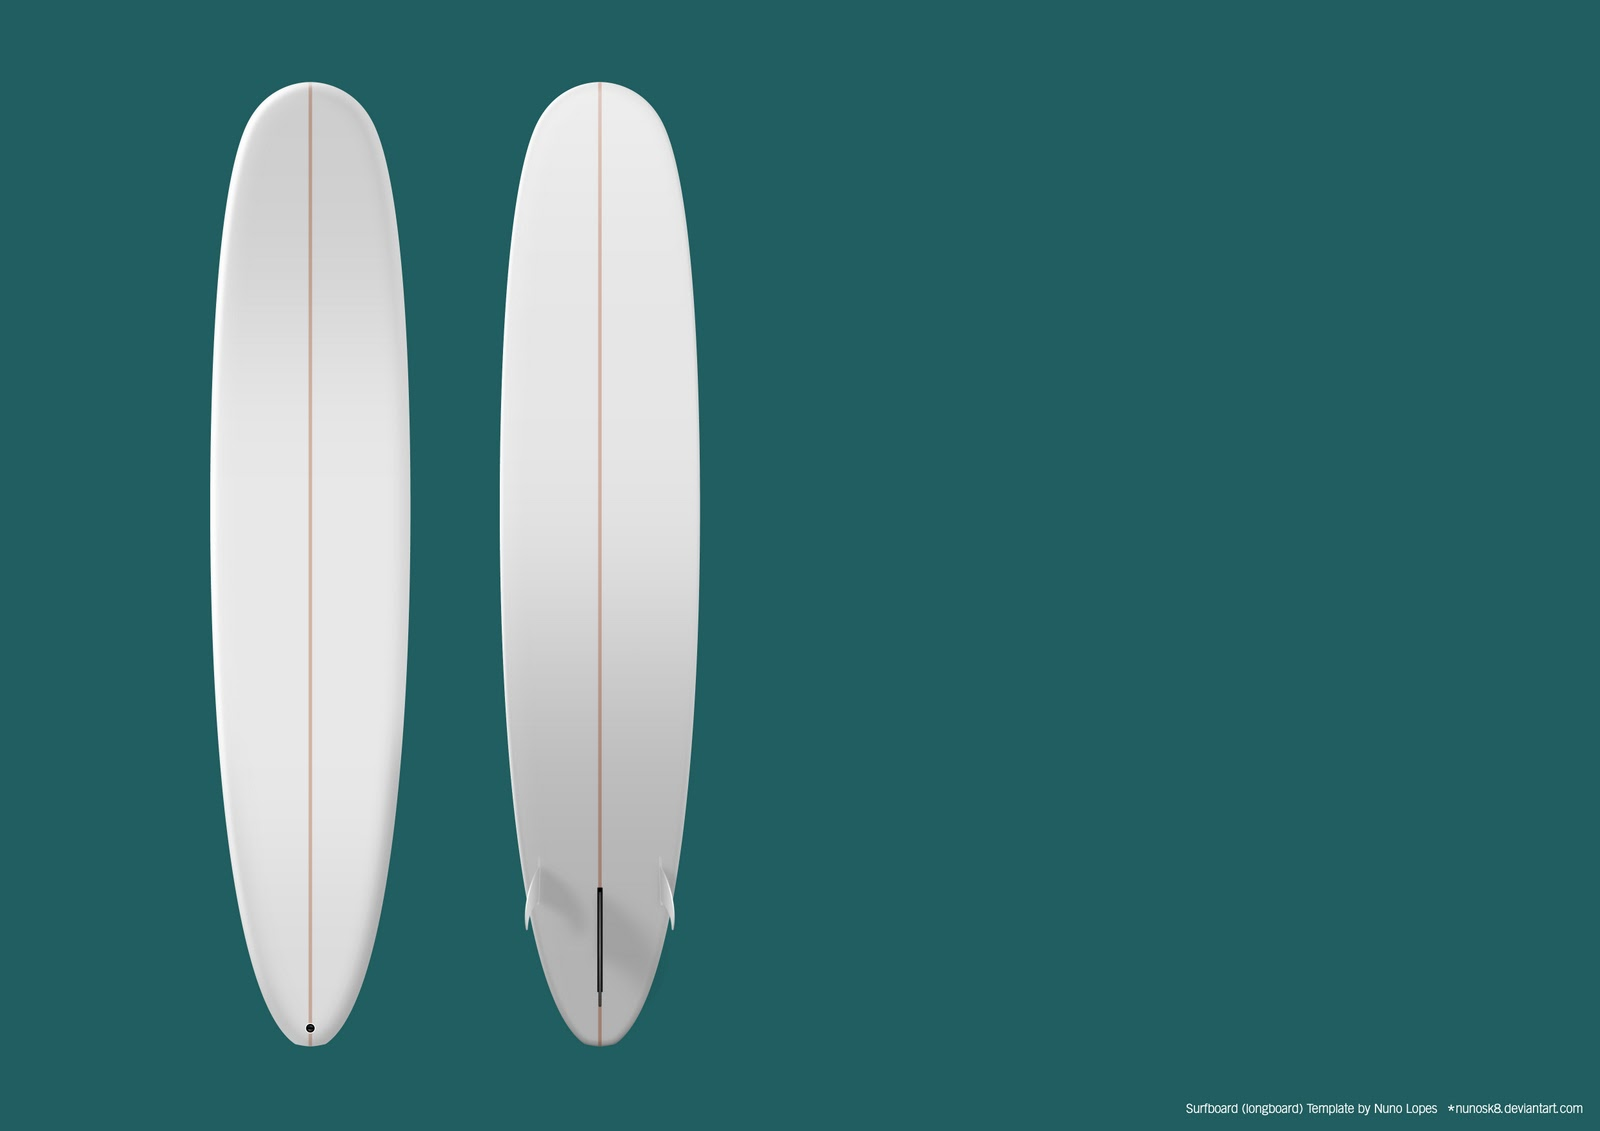 Psd Files Free Download Surfboards Surfboard Templates Surfboard Design